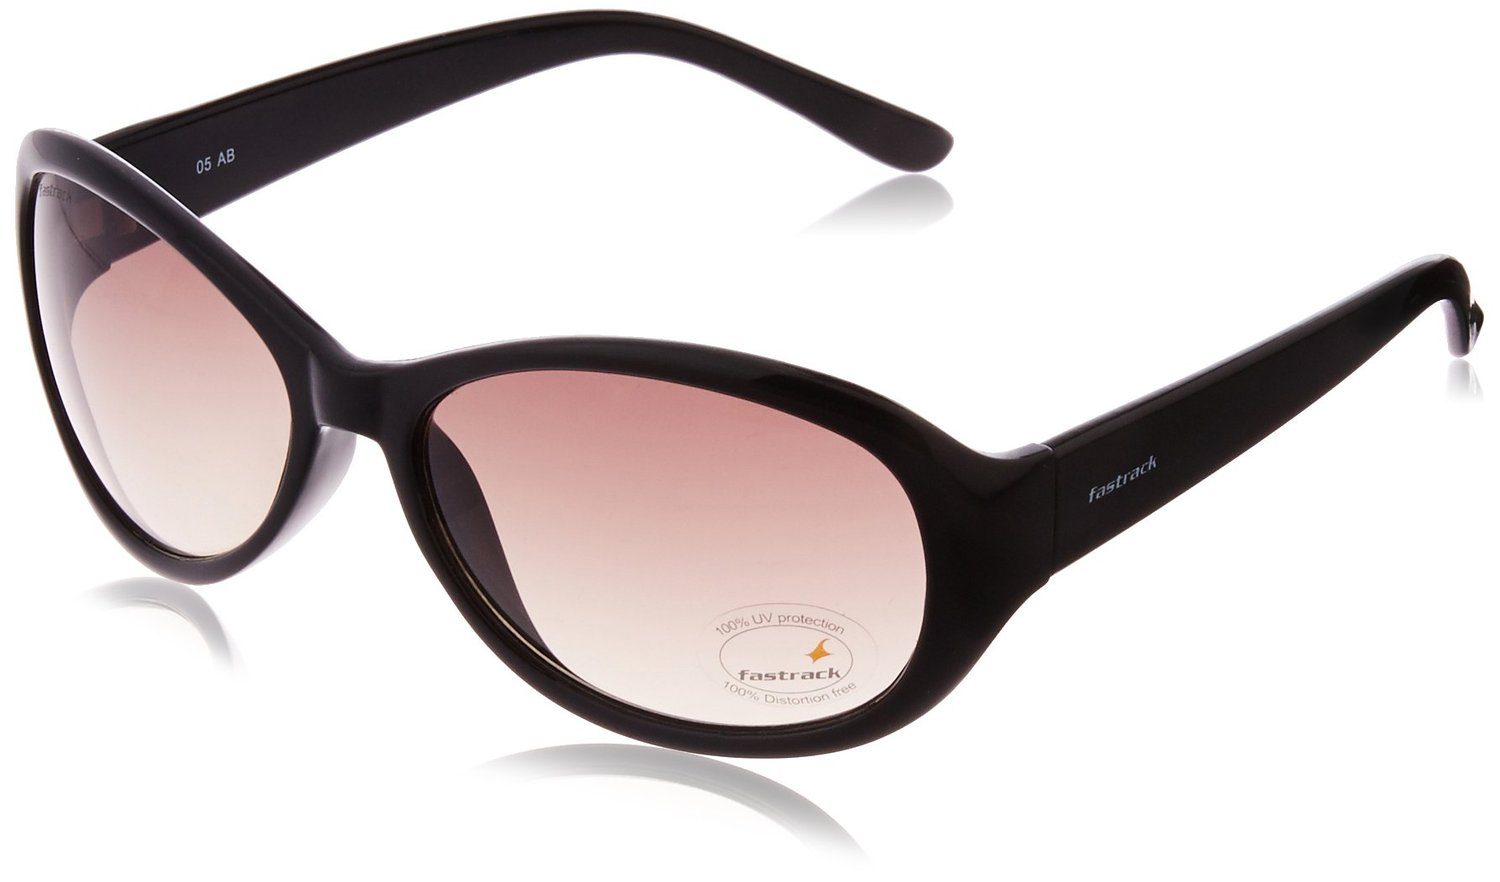 Fastrack, sunglasses for women